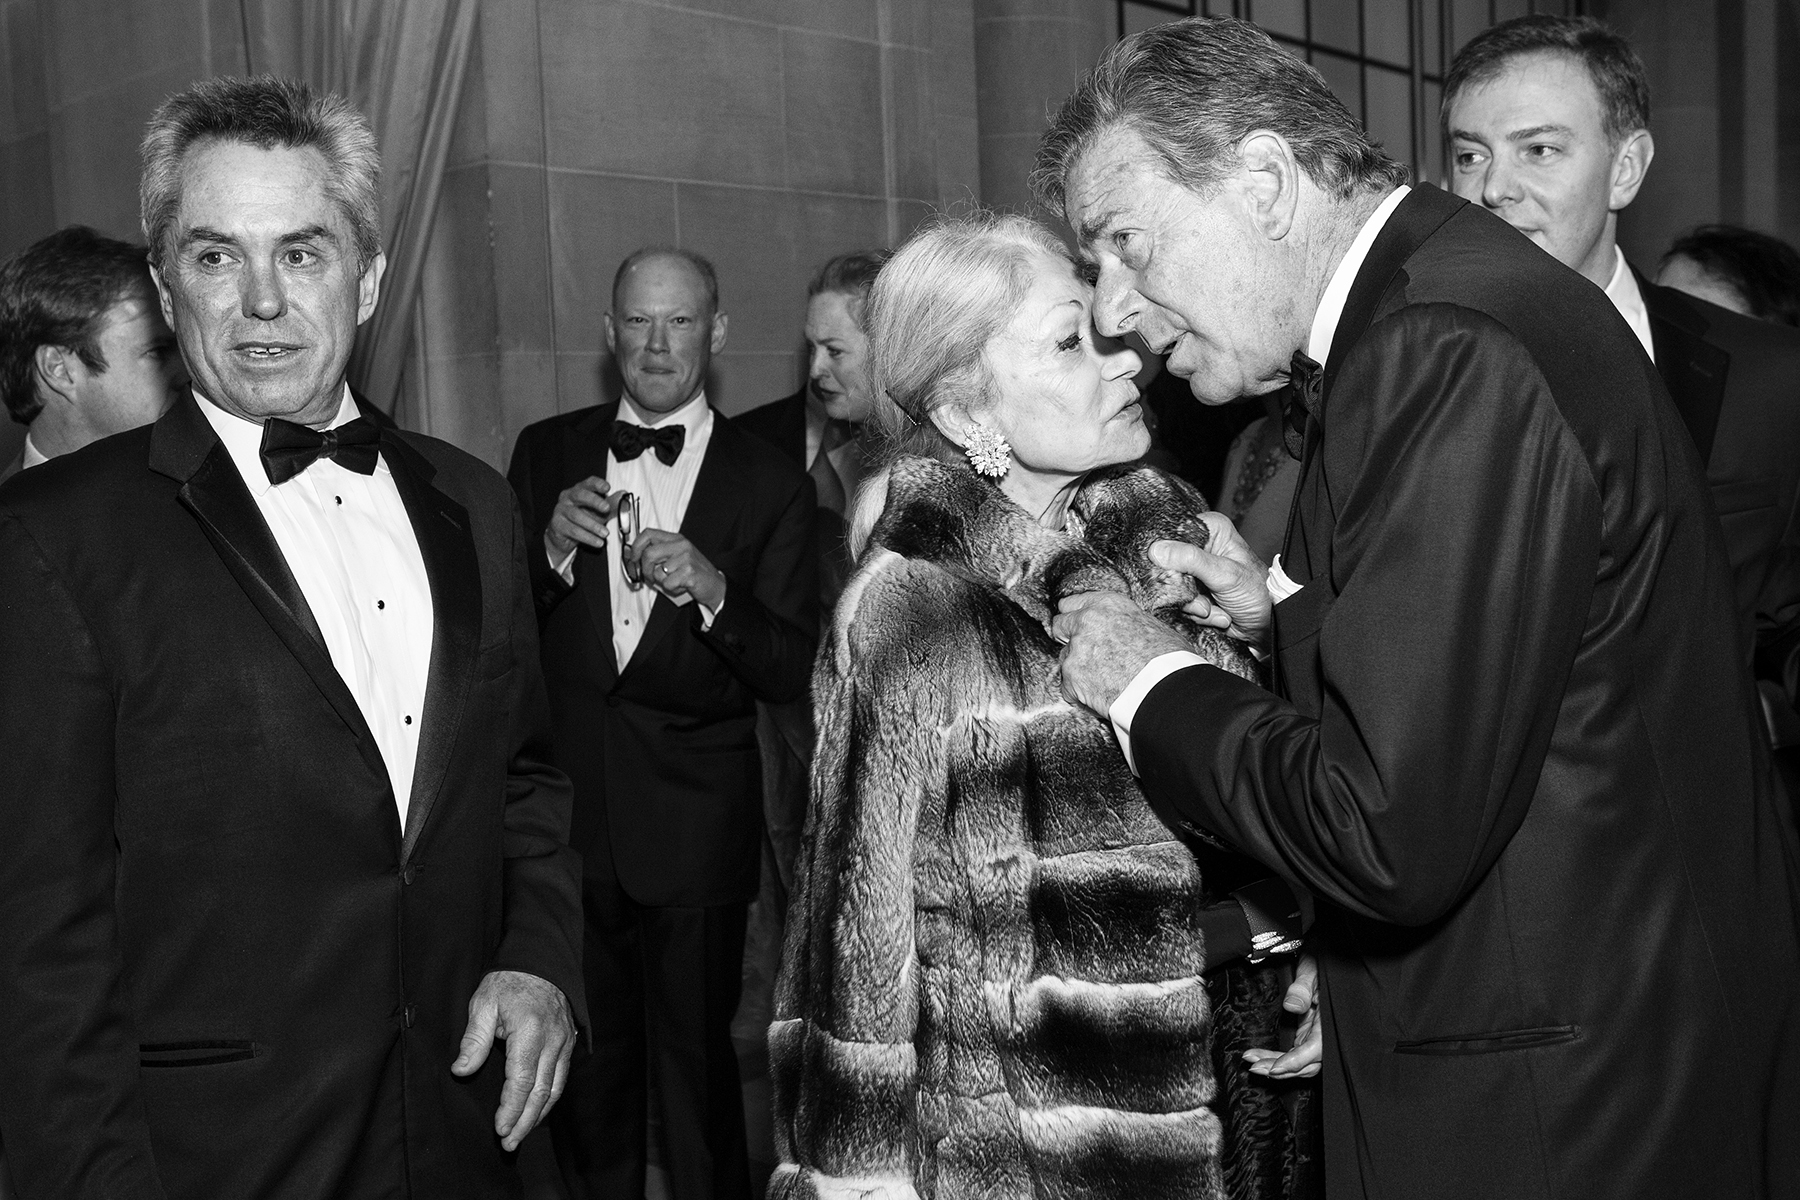 Paul Pelosi leans in to speak with socialite Denise Hale during the cocktail hour at the San Francisco Ballet Opening Night Gala in San Francisco, Calif., on Thursday, January 19, 2012. This photograph is of a candid moment and was not directed in any way.